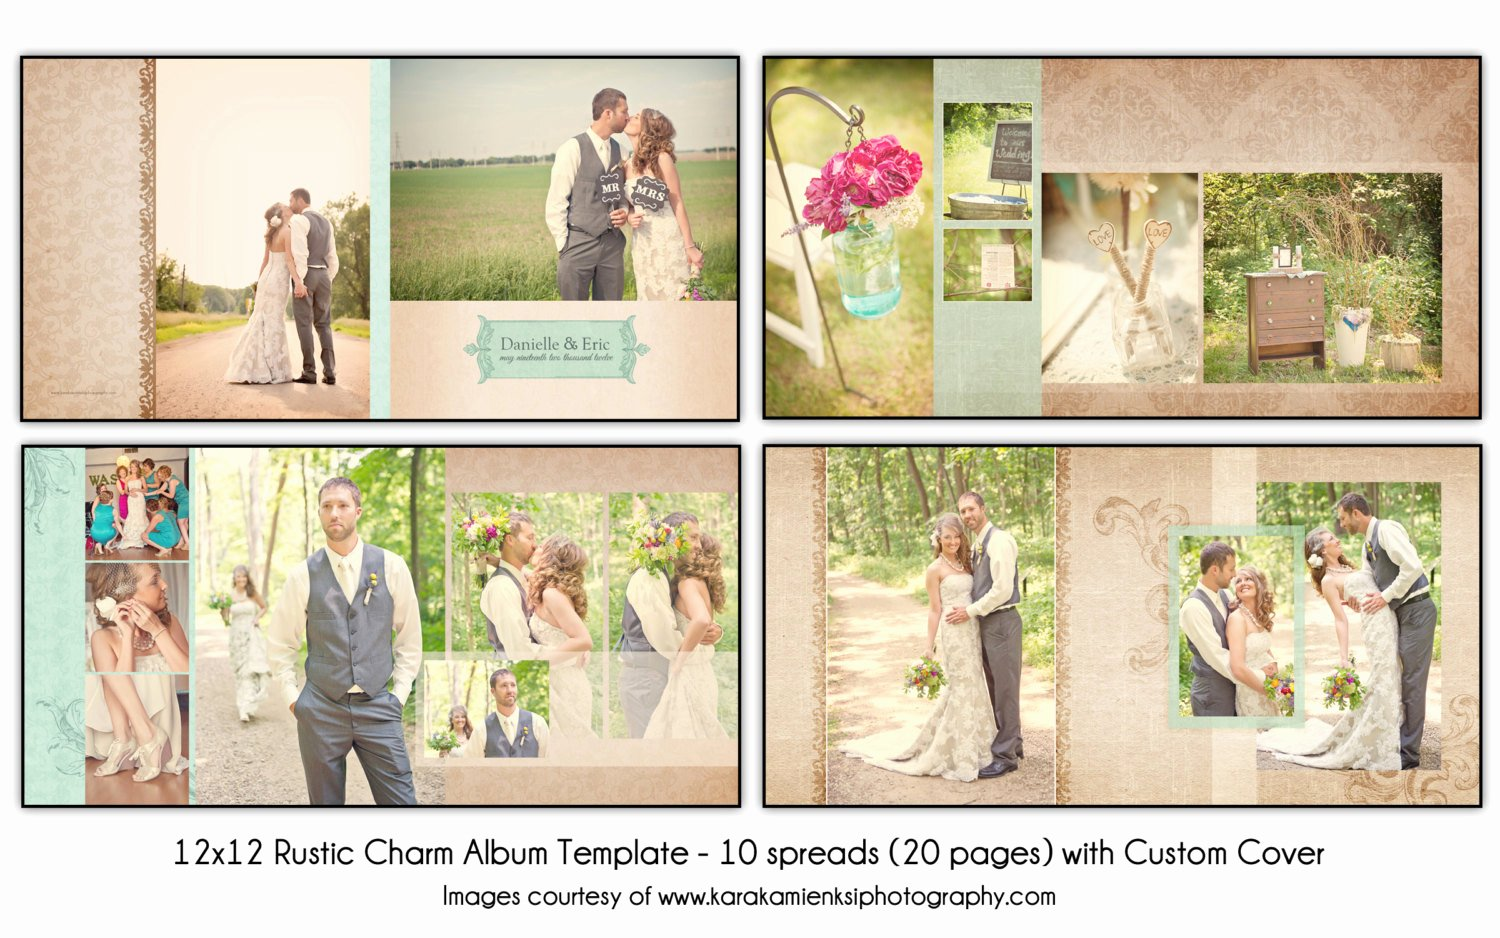 Free Photo Album Template Fresh Rustic Charm 12x12 Wedding Album Template 10 Spread